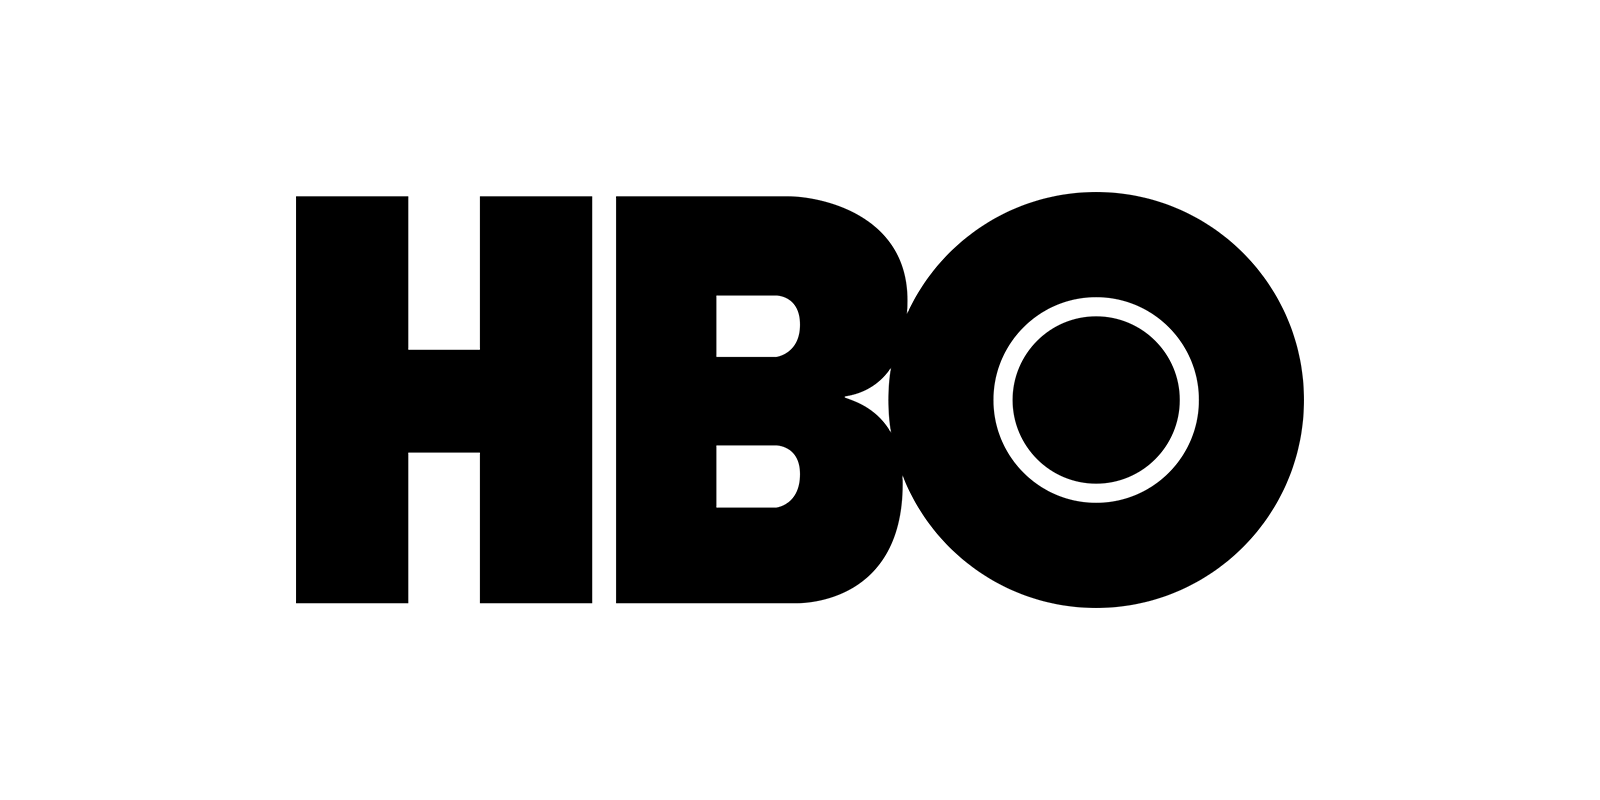 Joss Whedon Going to HBO With His New Series 'The Nevers'